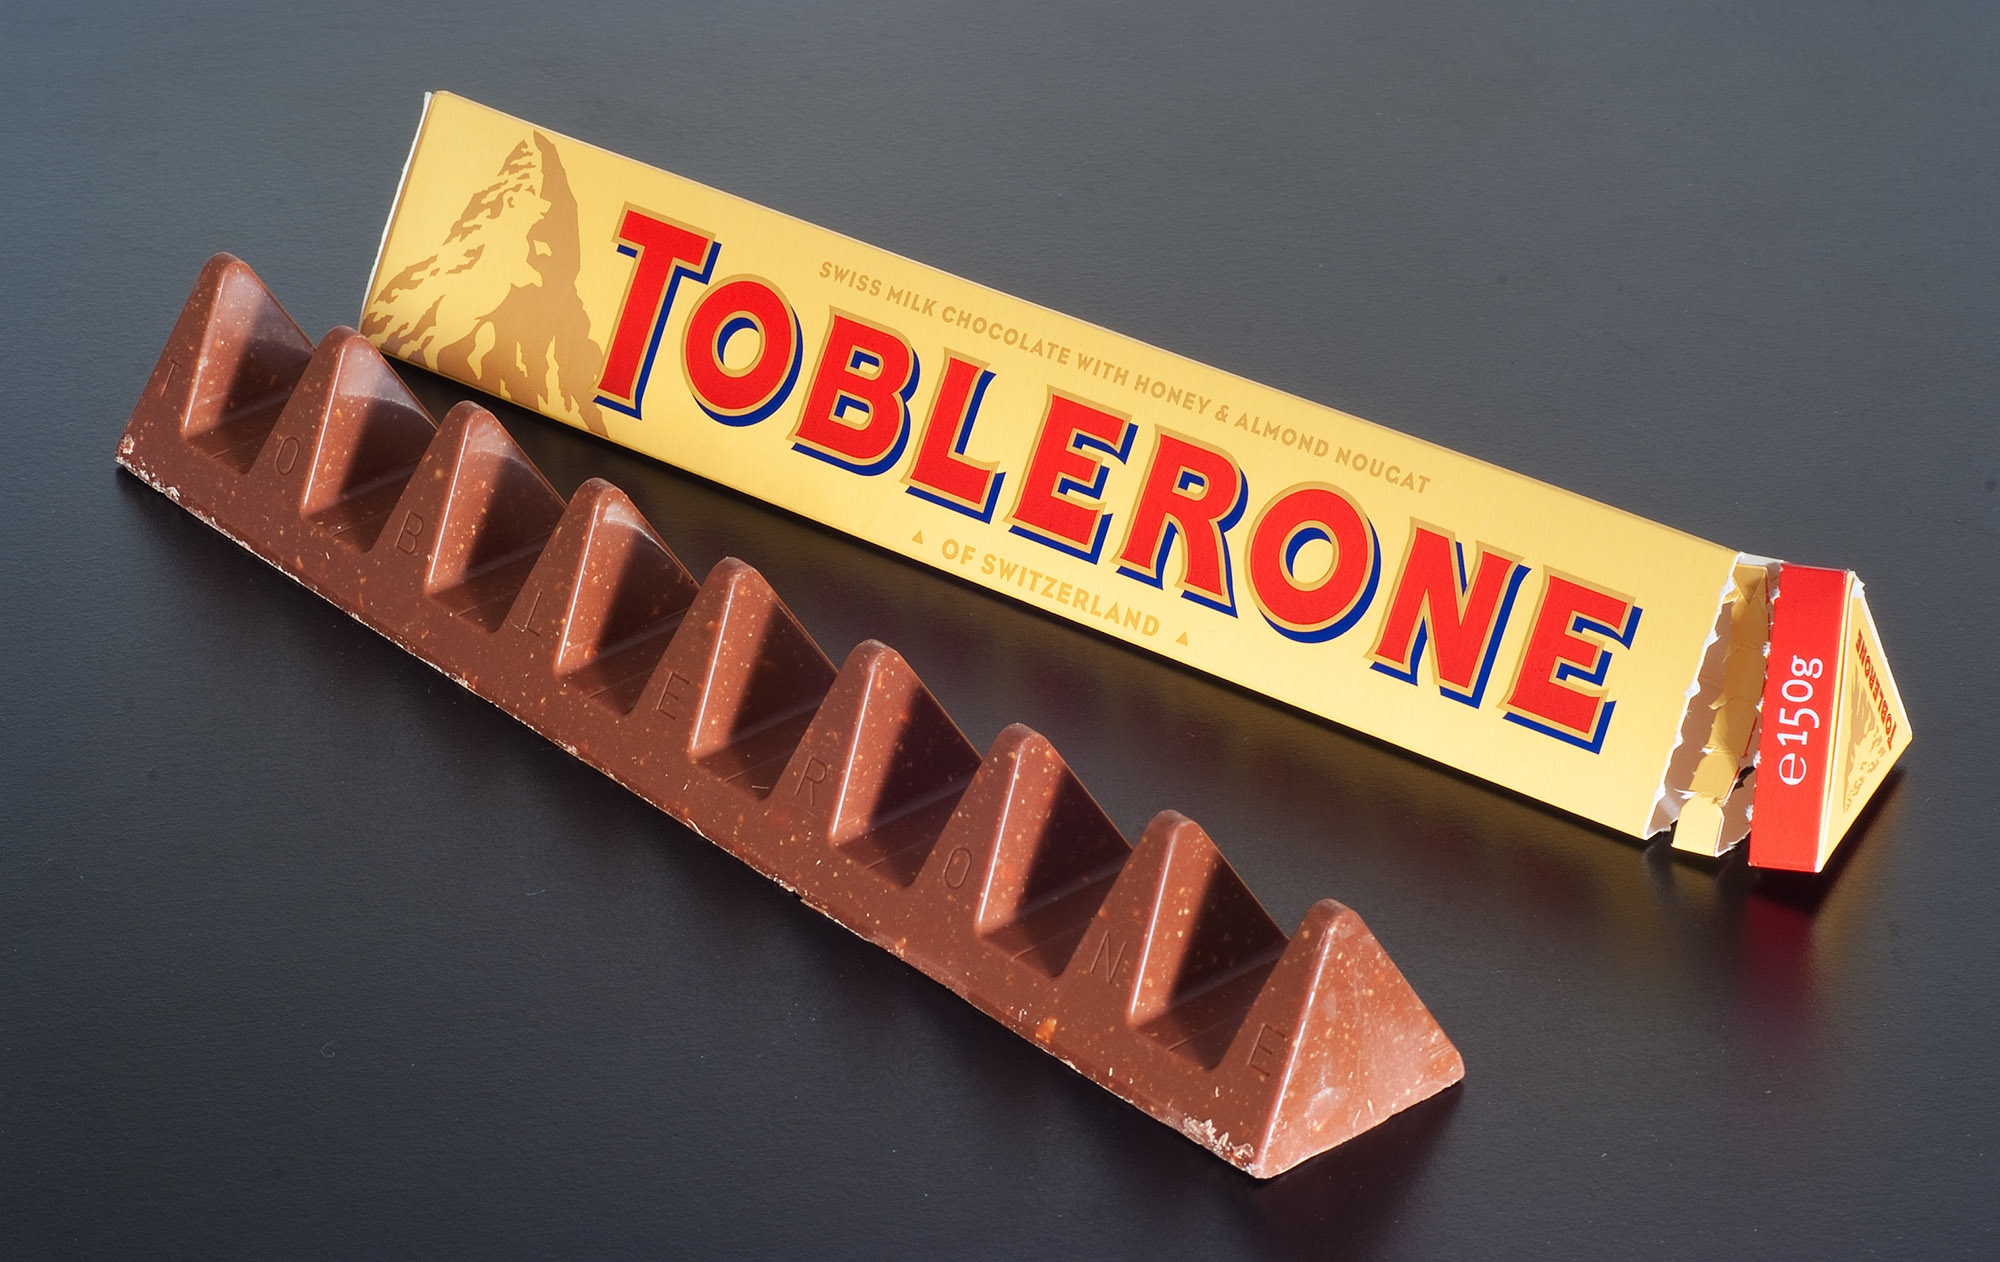 Toblerone Wikipedia